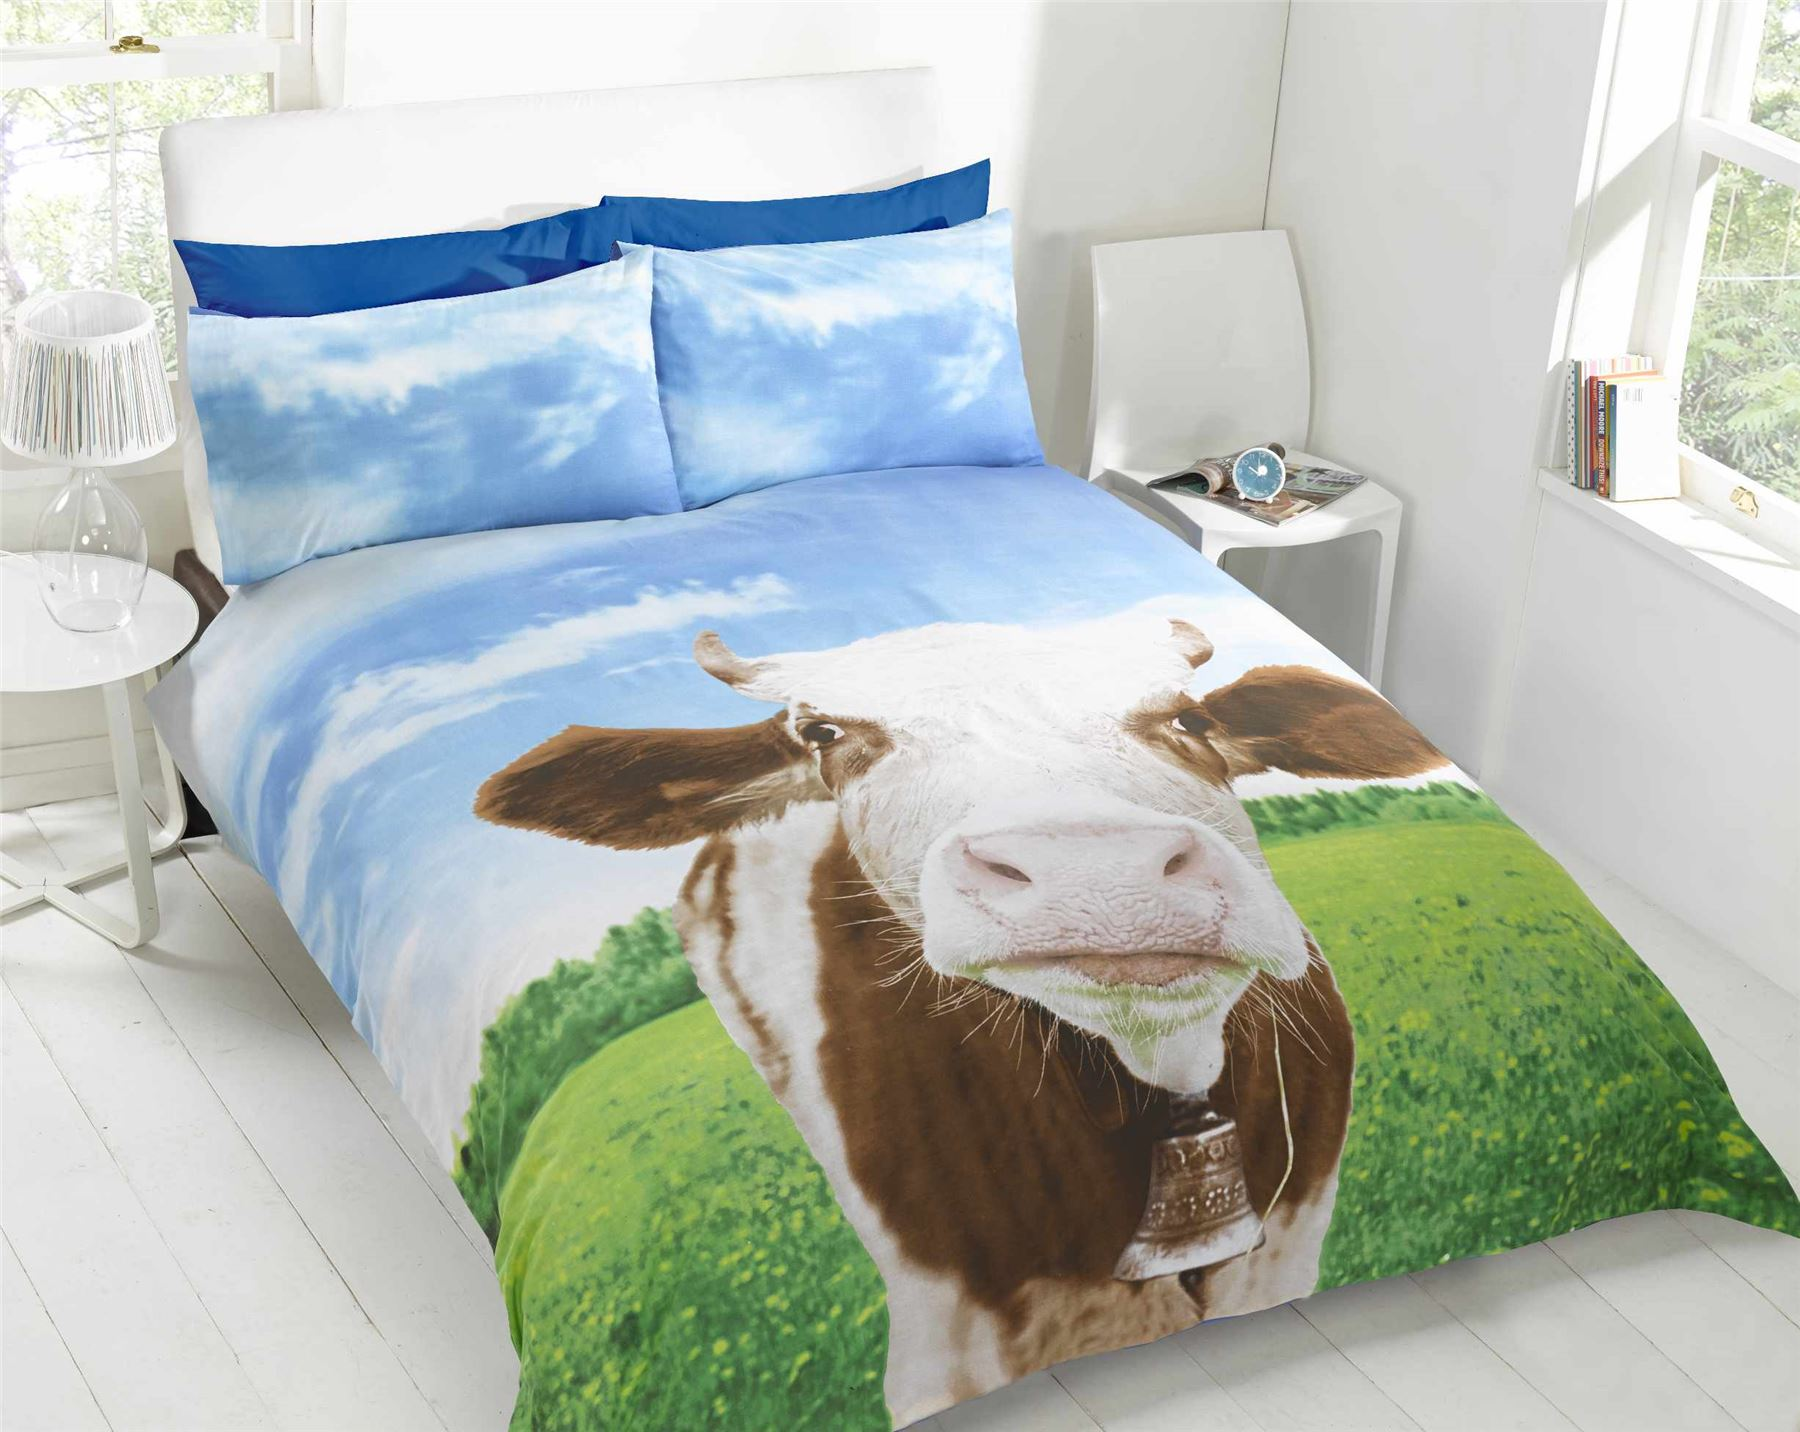 Cow novelty farm animals quilt duvet cover pillowcase for Housse de couette vache